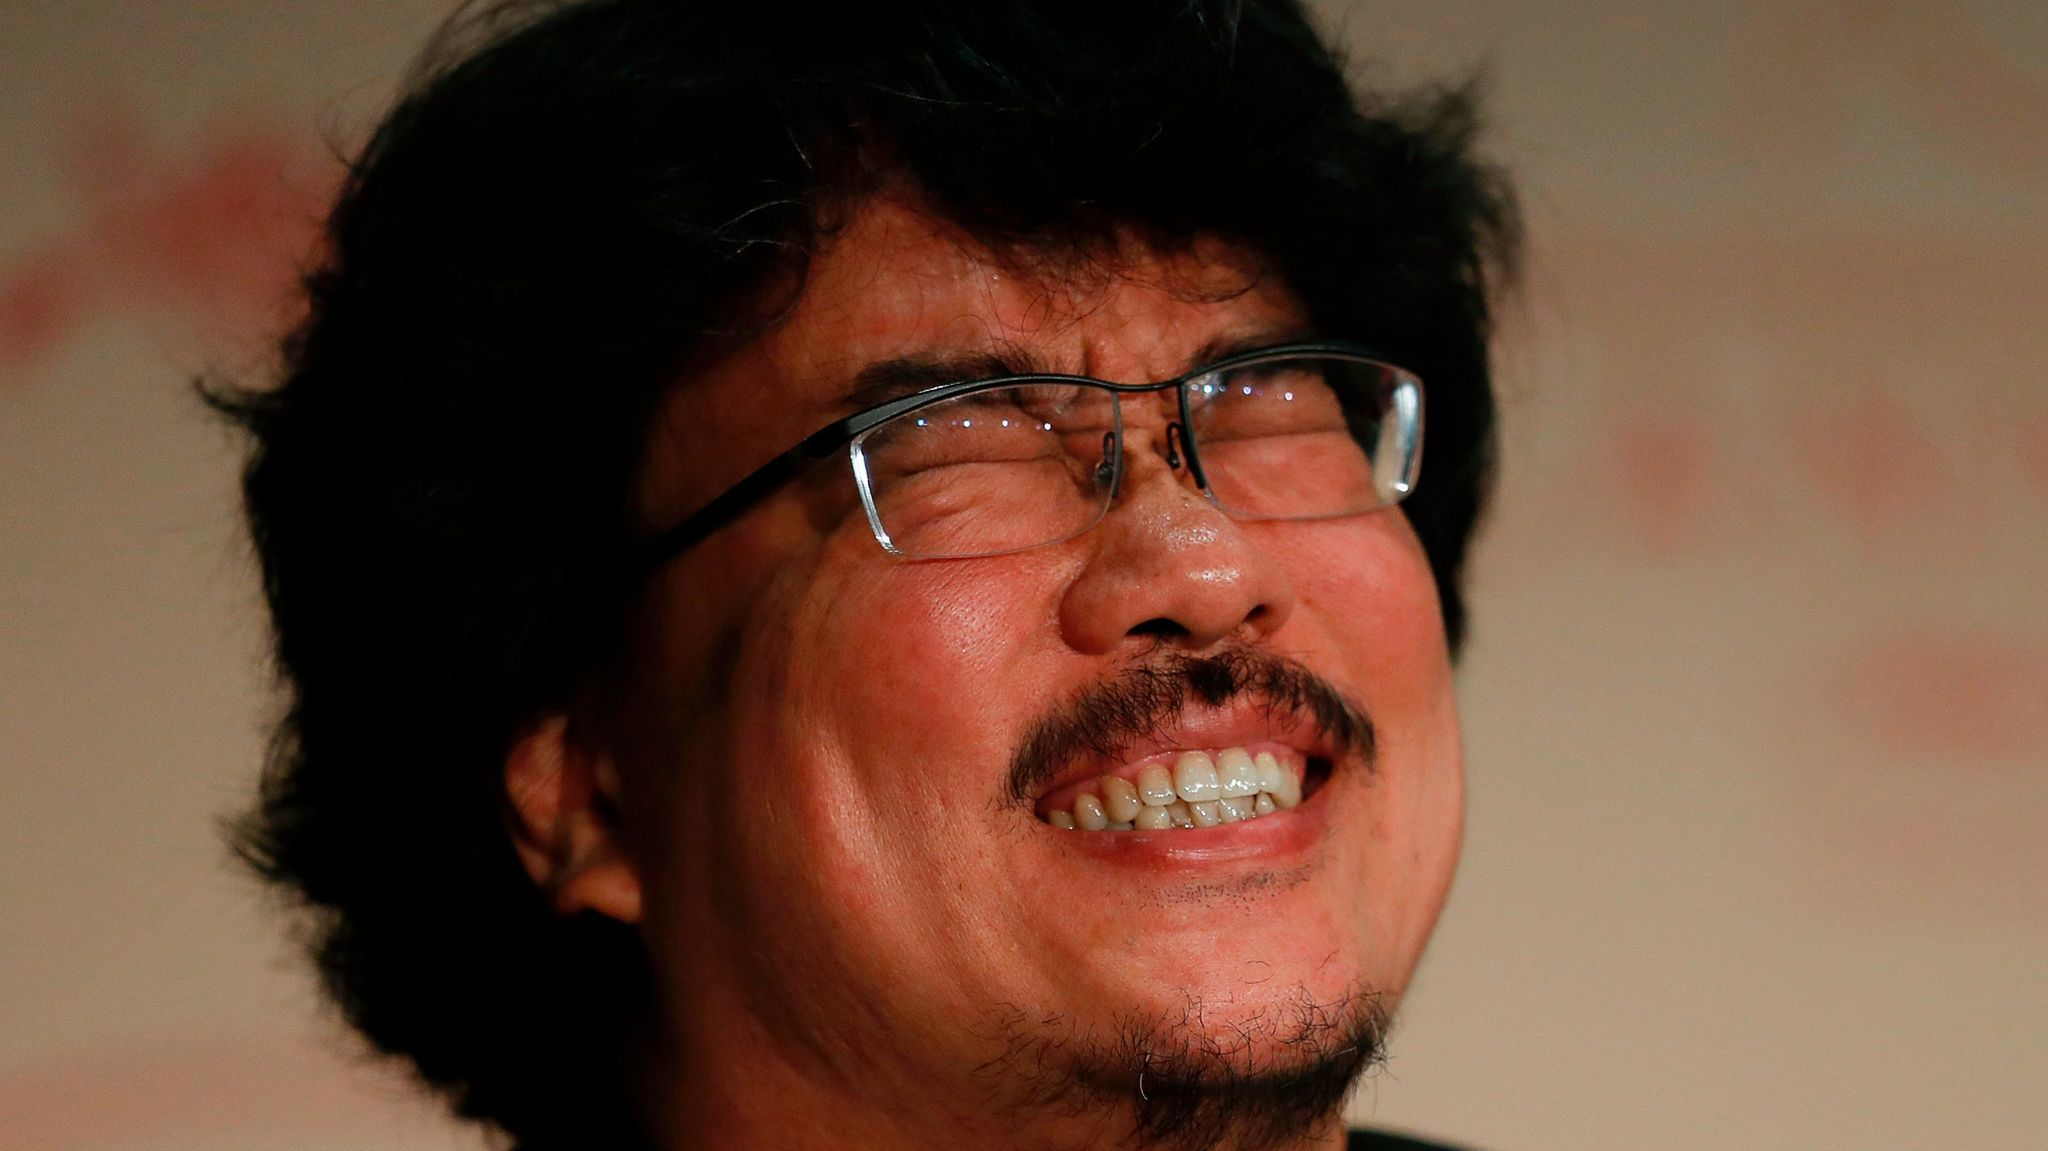 South Korean director Bong Joon-ho reacts during a May 19 conference for the film 'Okja' at the Cannes Film Festival. (Laurent Emmanuel / AFP/Getty Images)